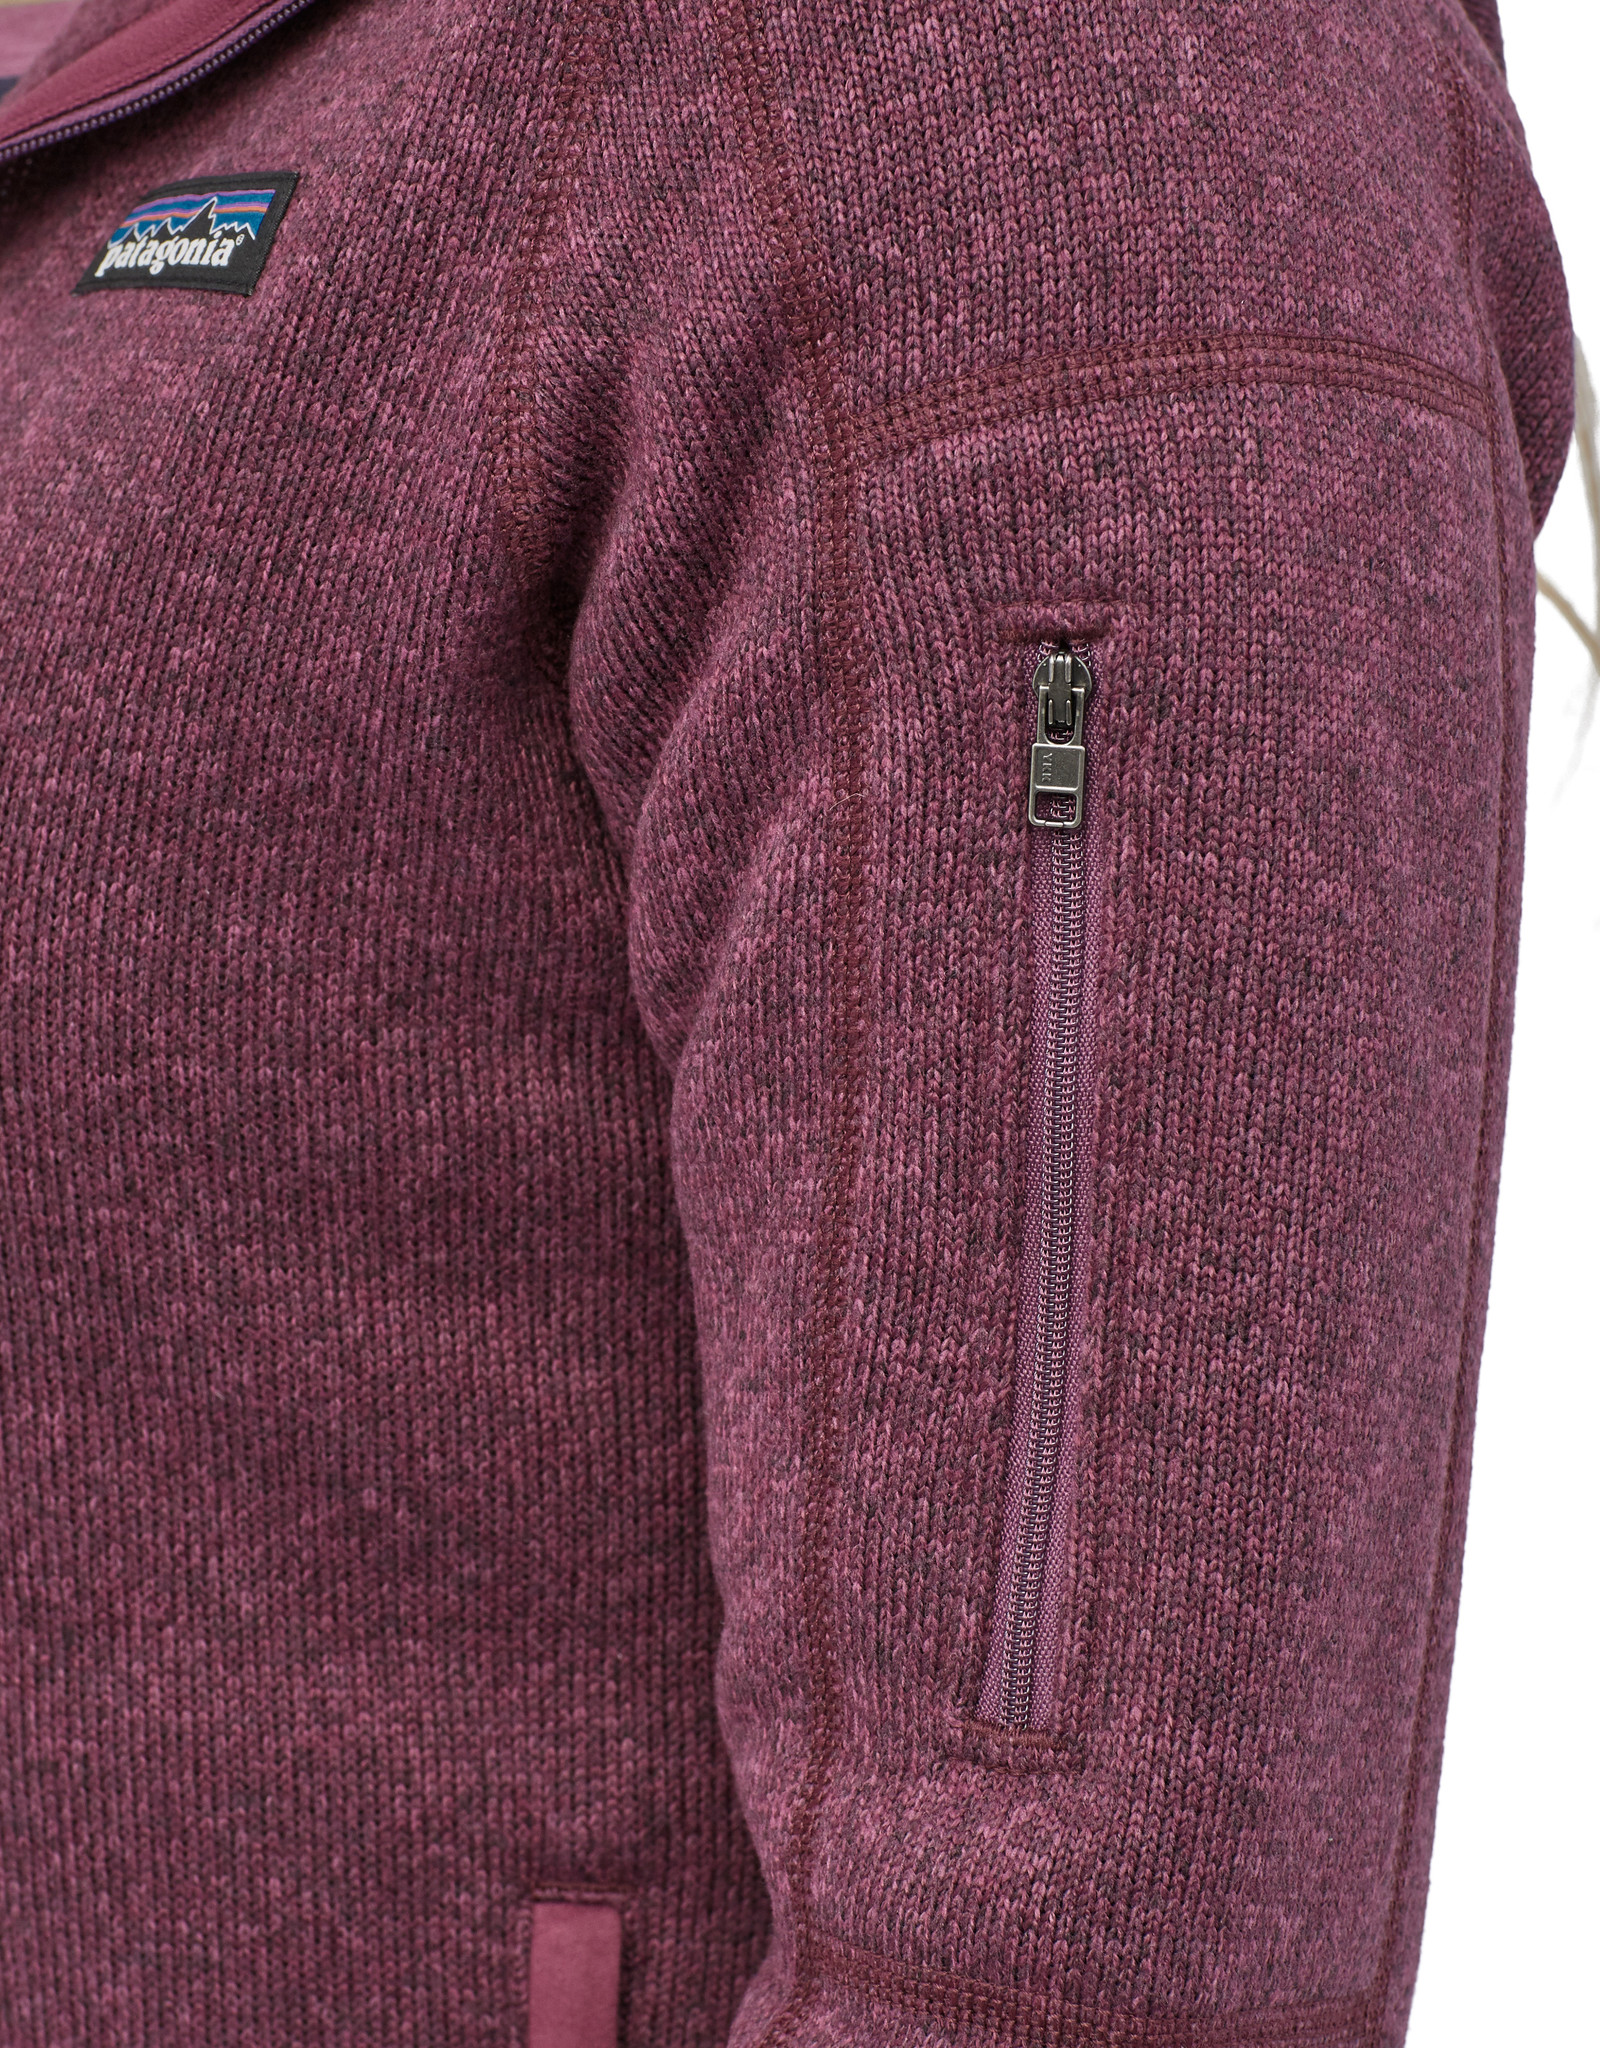 patagonia W's Better sweater hoody (ref 25539)